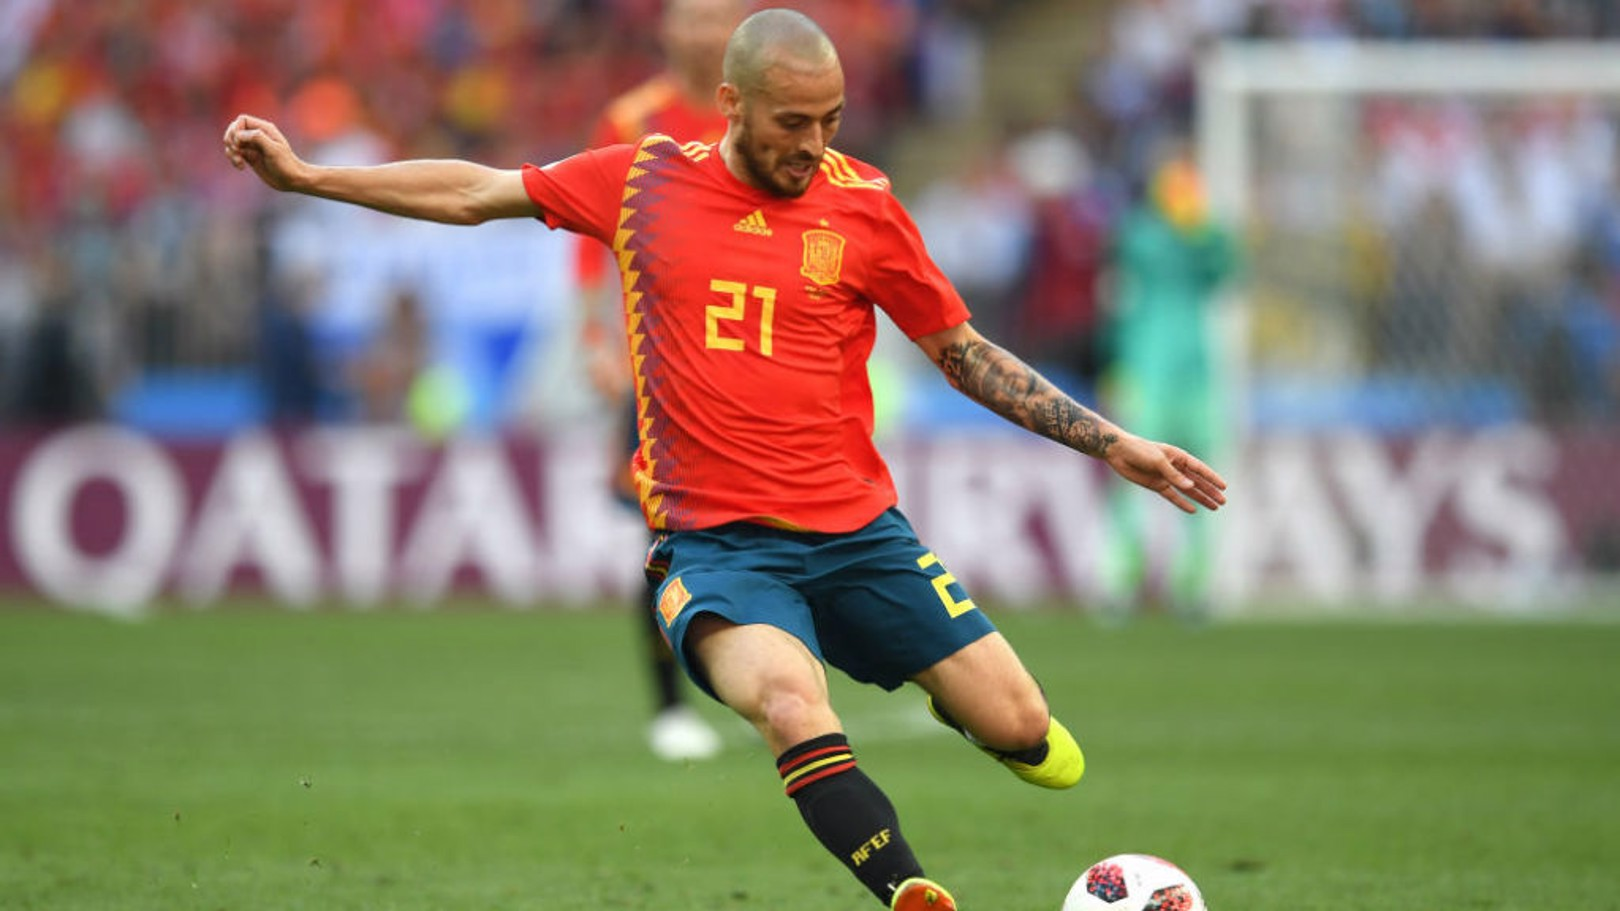 SILVA SERVICE: David has retired from international football having made 125 appearances for Spain